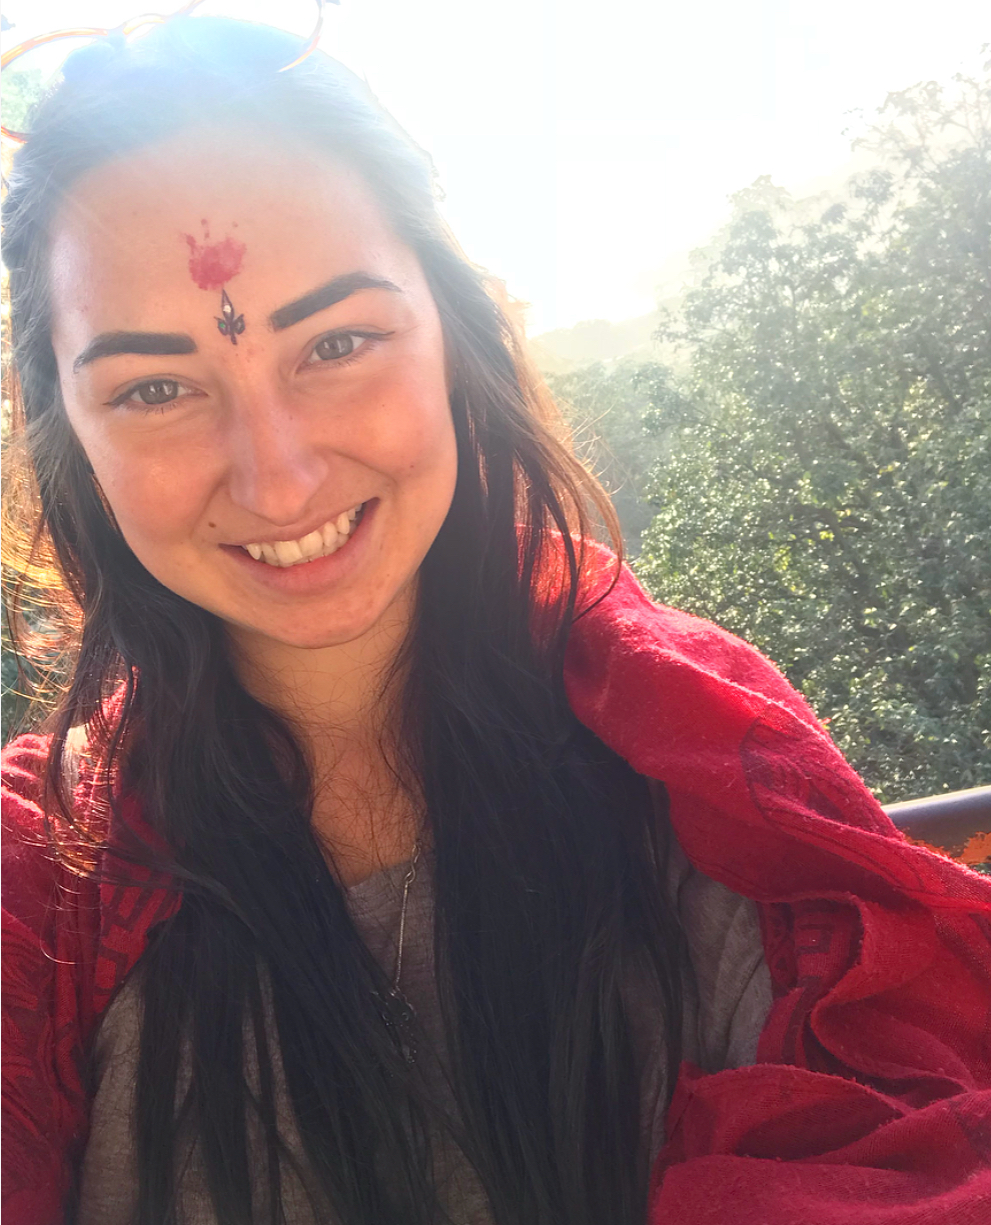 Blessed at the temple, represented by the red mark on the forehead (the third eye chakra).